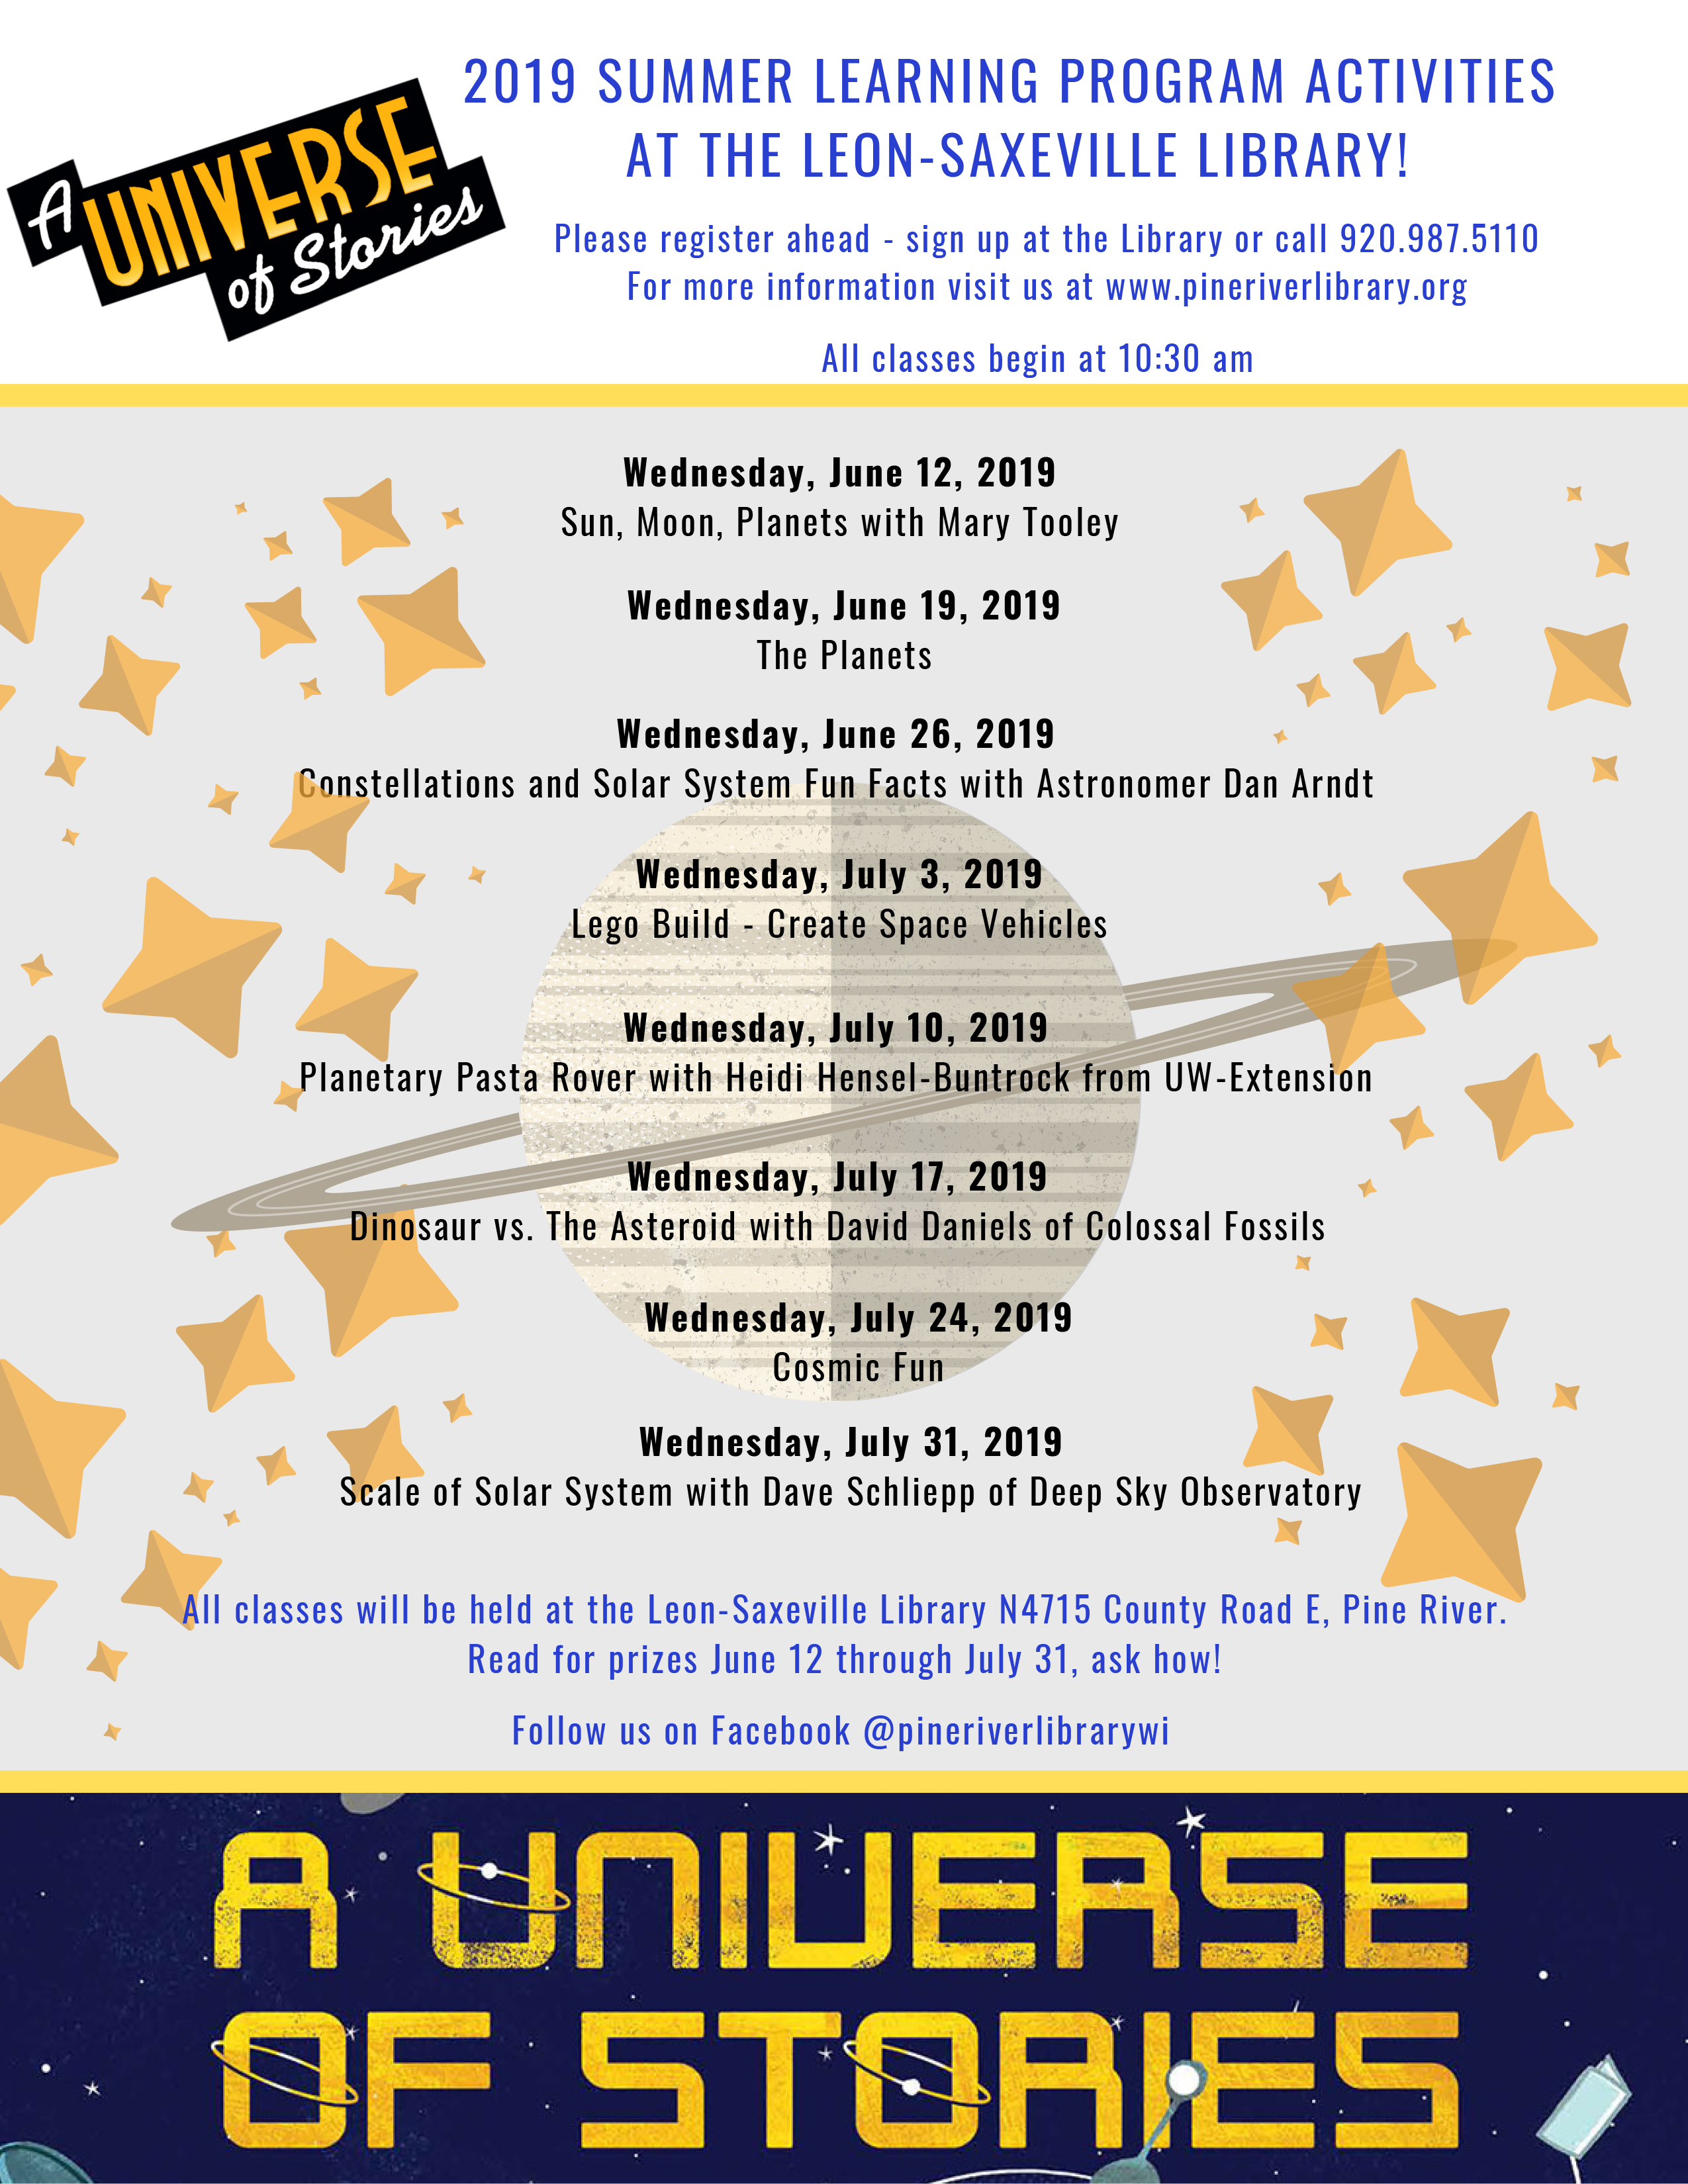 2019 Summer Learning Program Activities at the Leon-Saveville Library